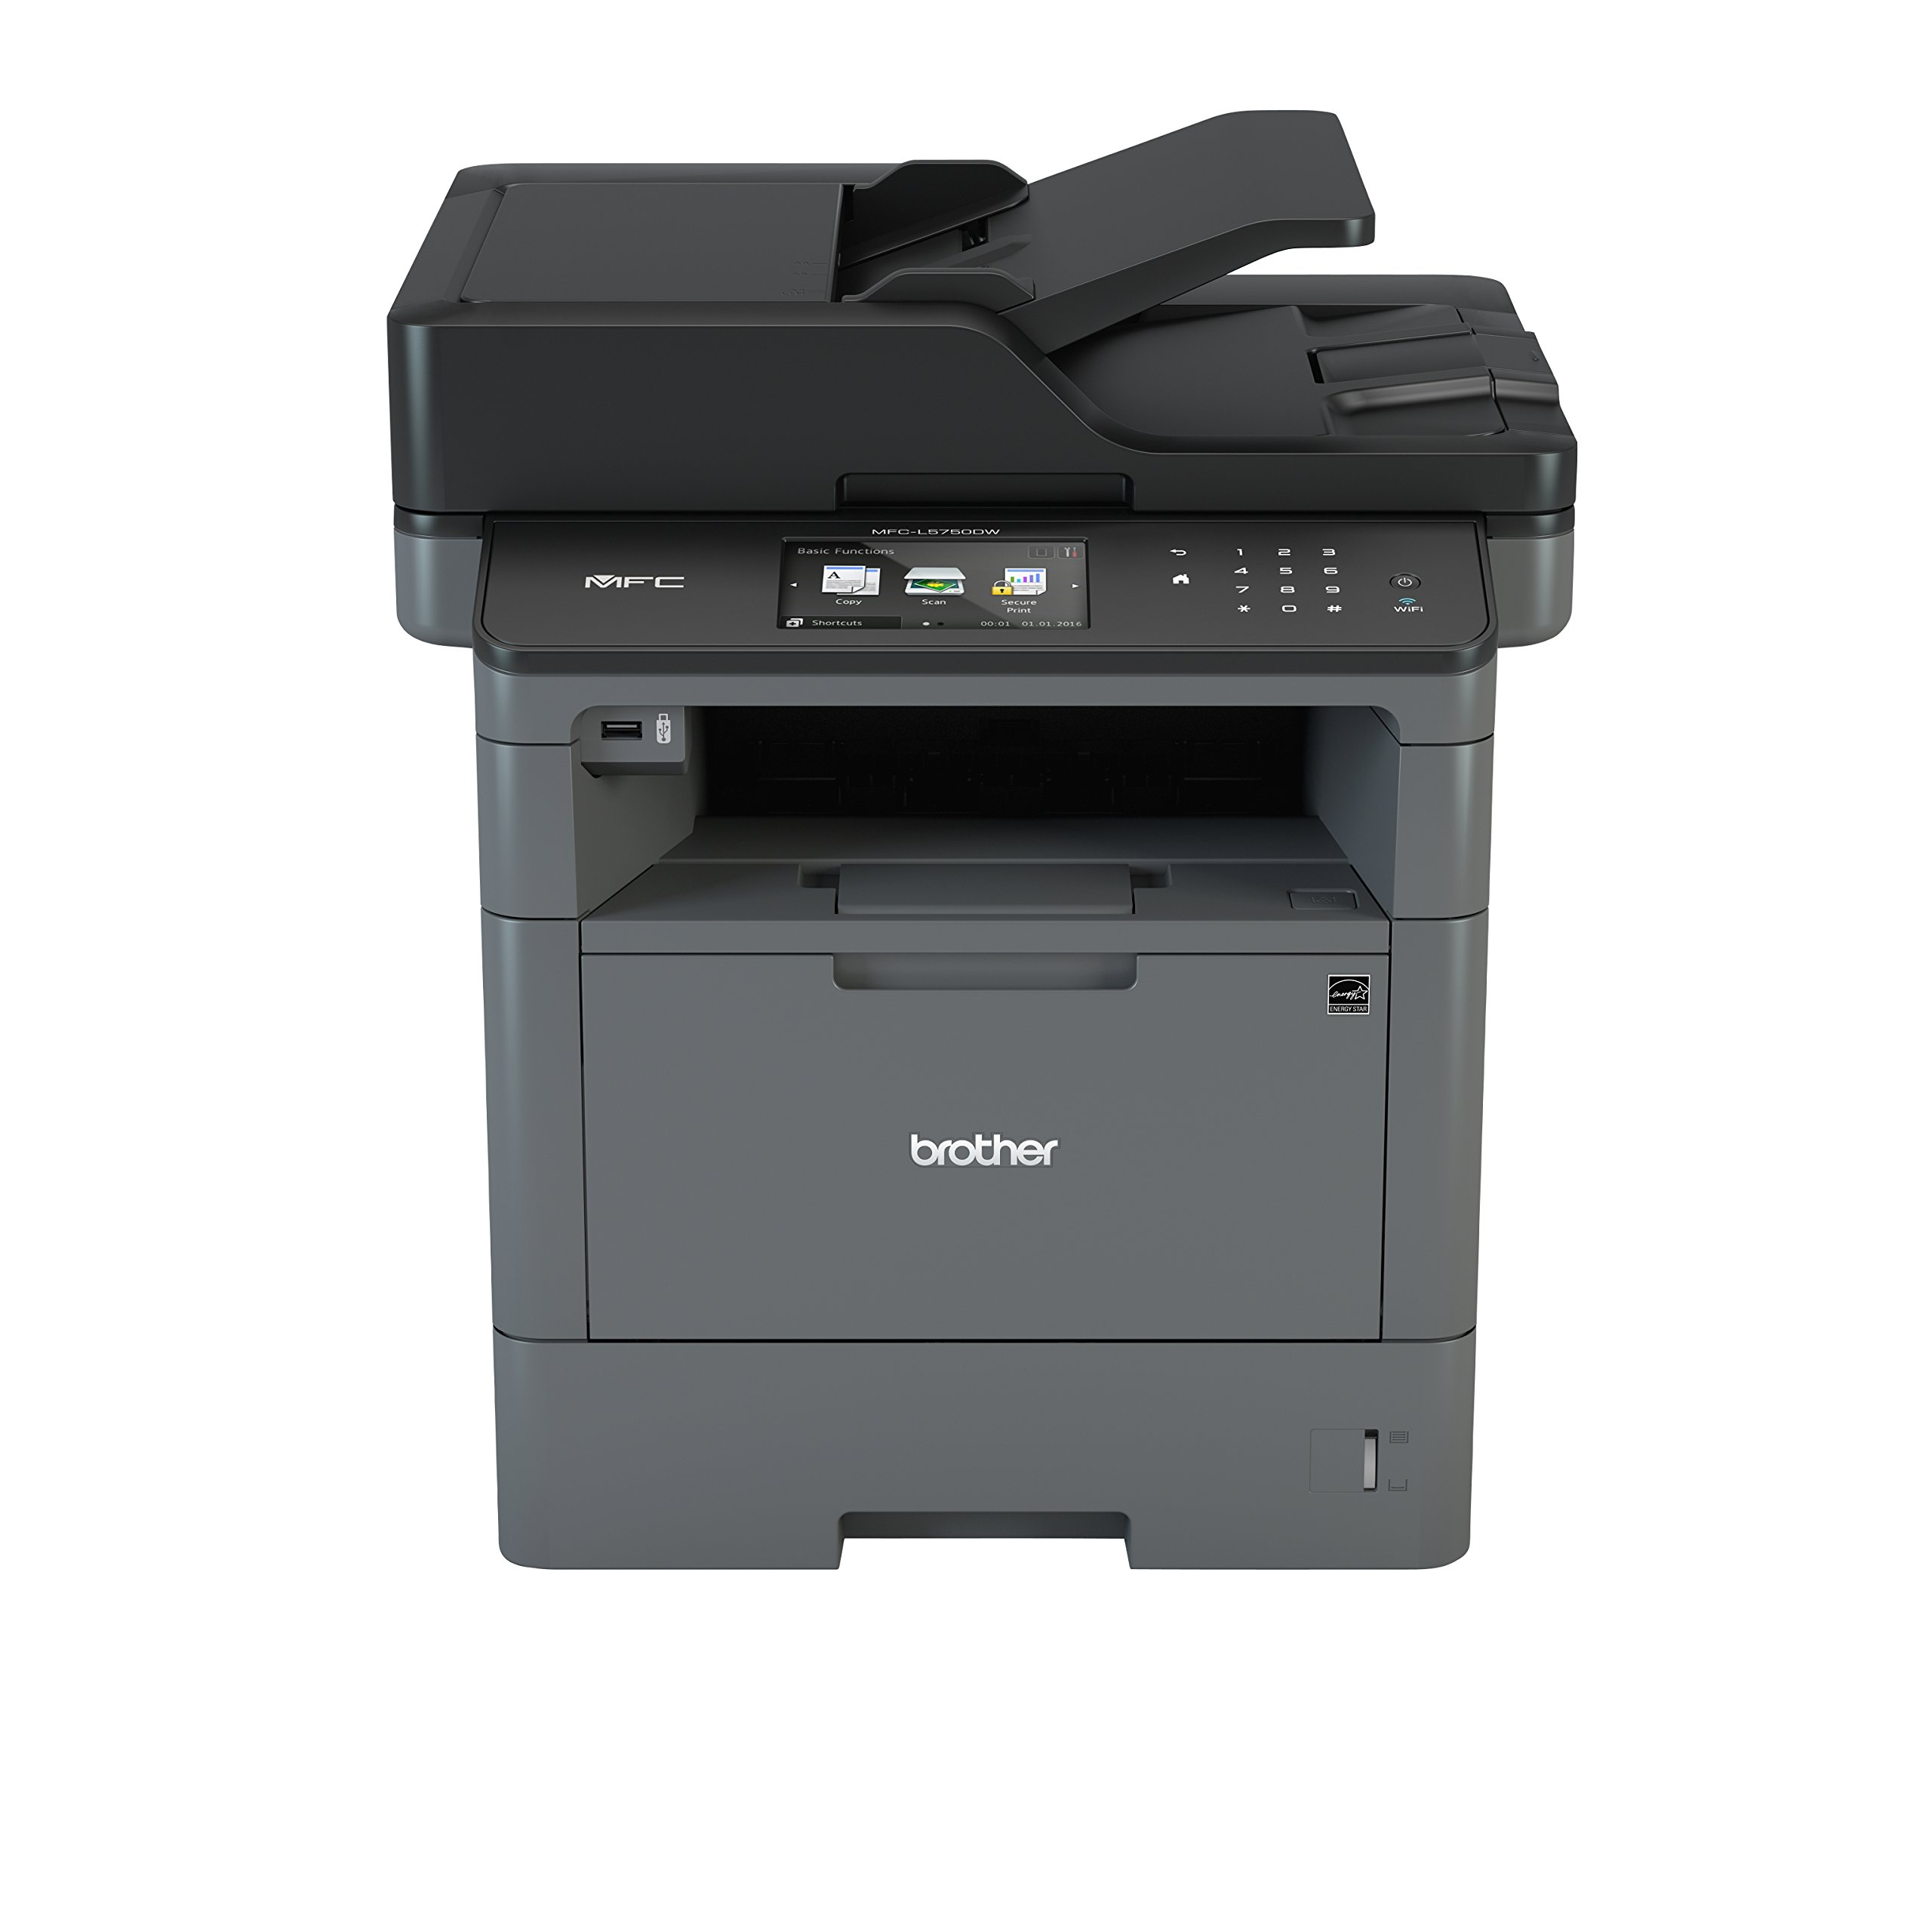 Duplex Two-Sided Printing /& Wireless Brother DCP-L2530DW Mono Laser Printer Extra Original TN2410 Brother Toner A4 Print Black, 1,200 Pages Copy Scan